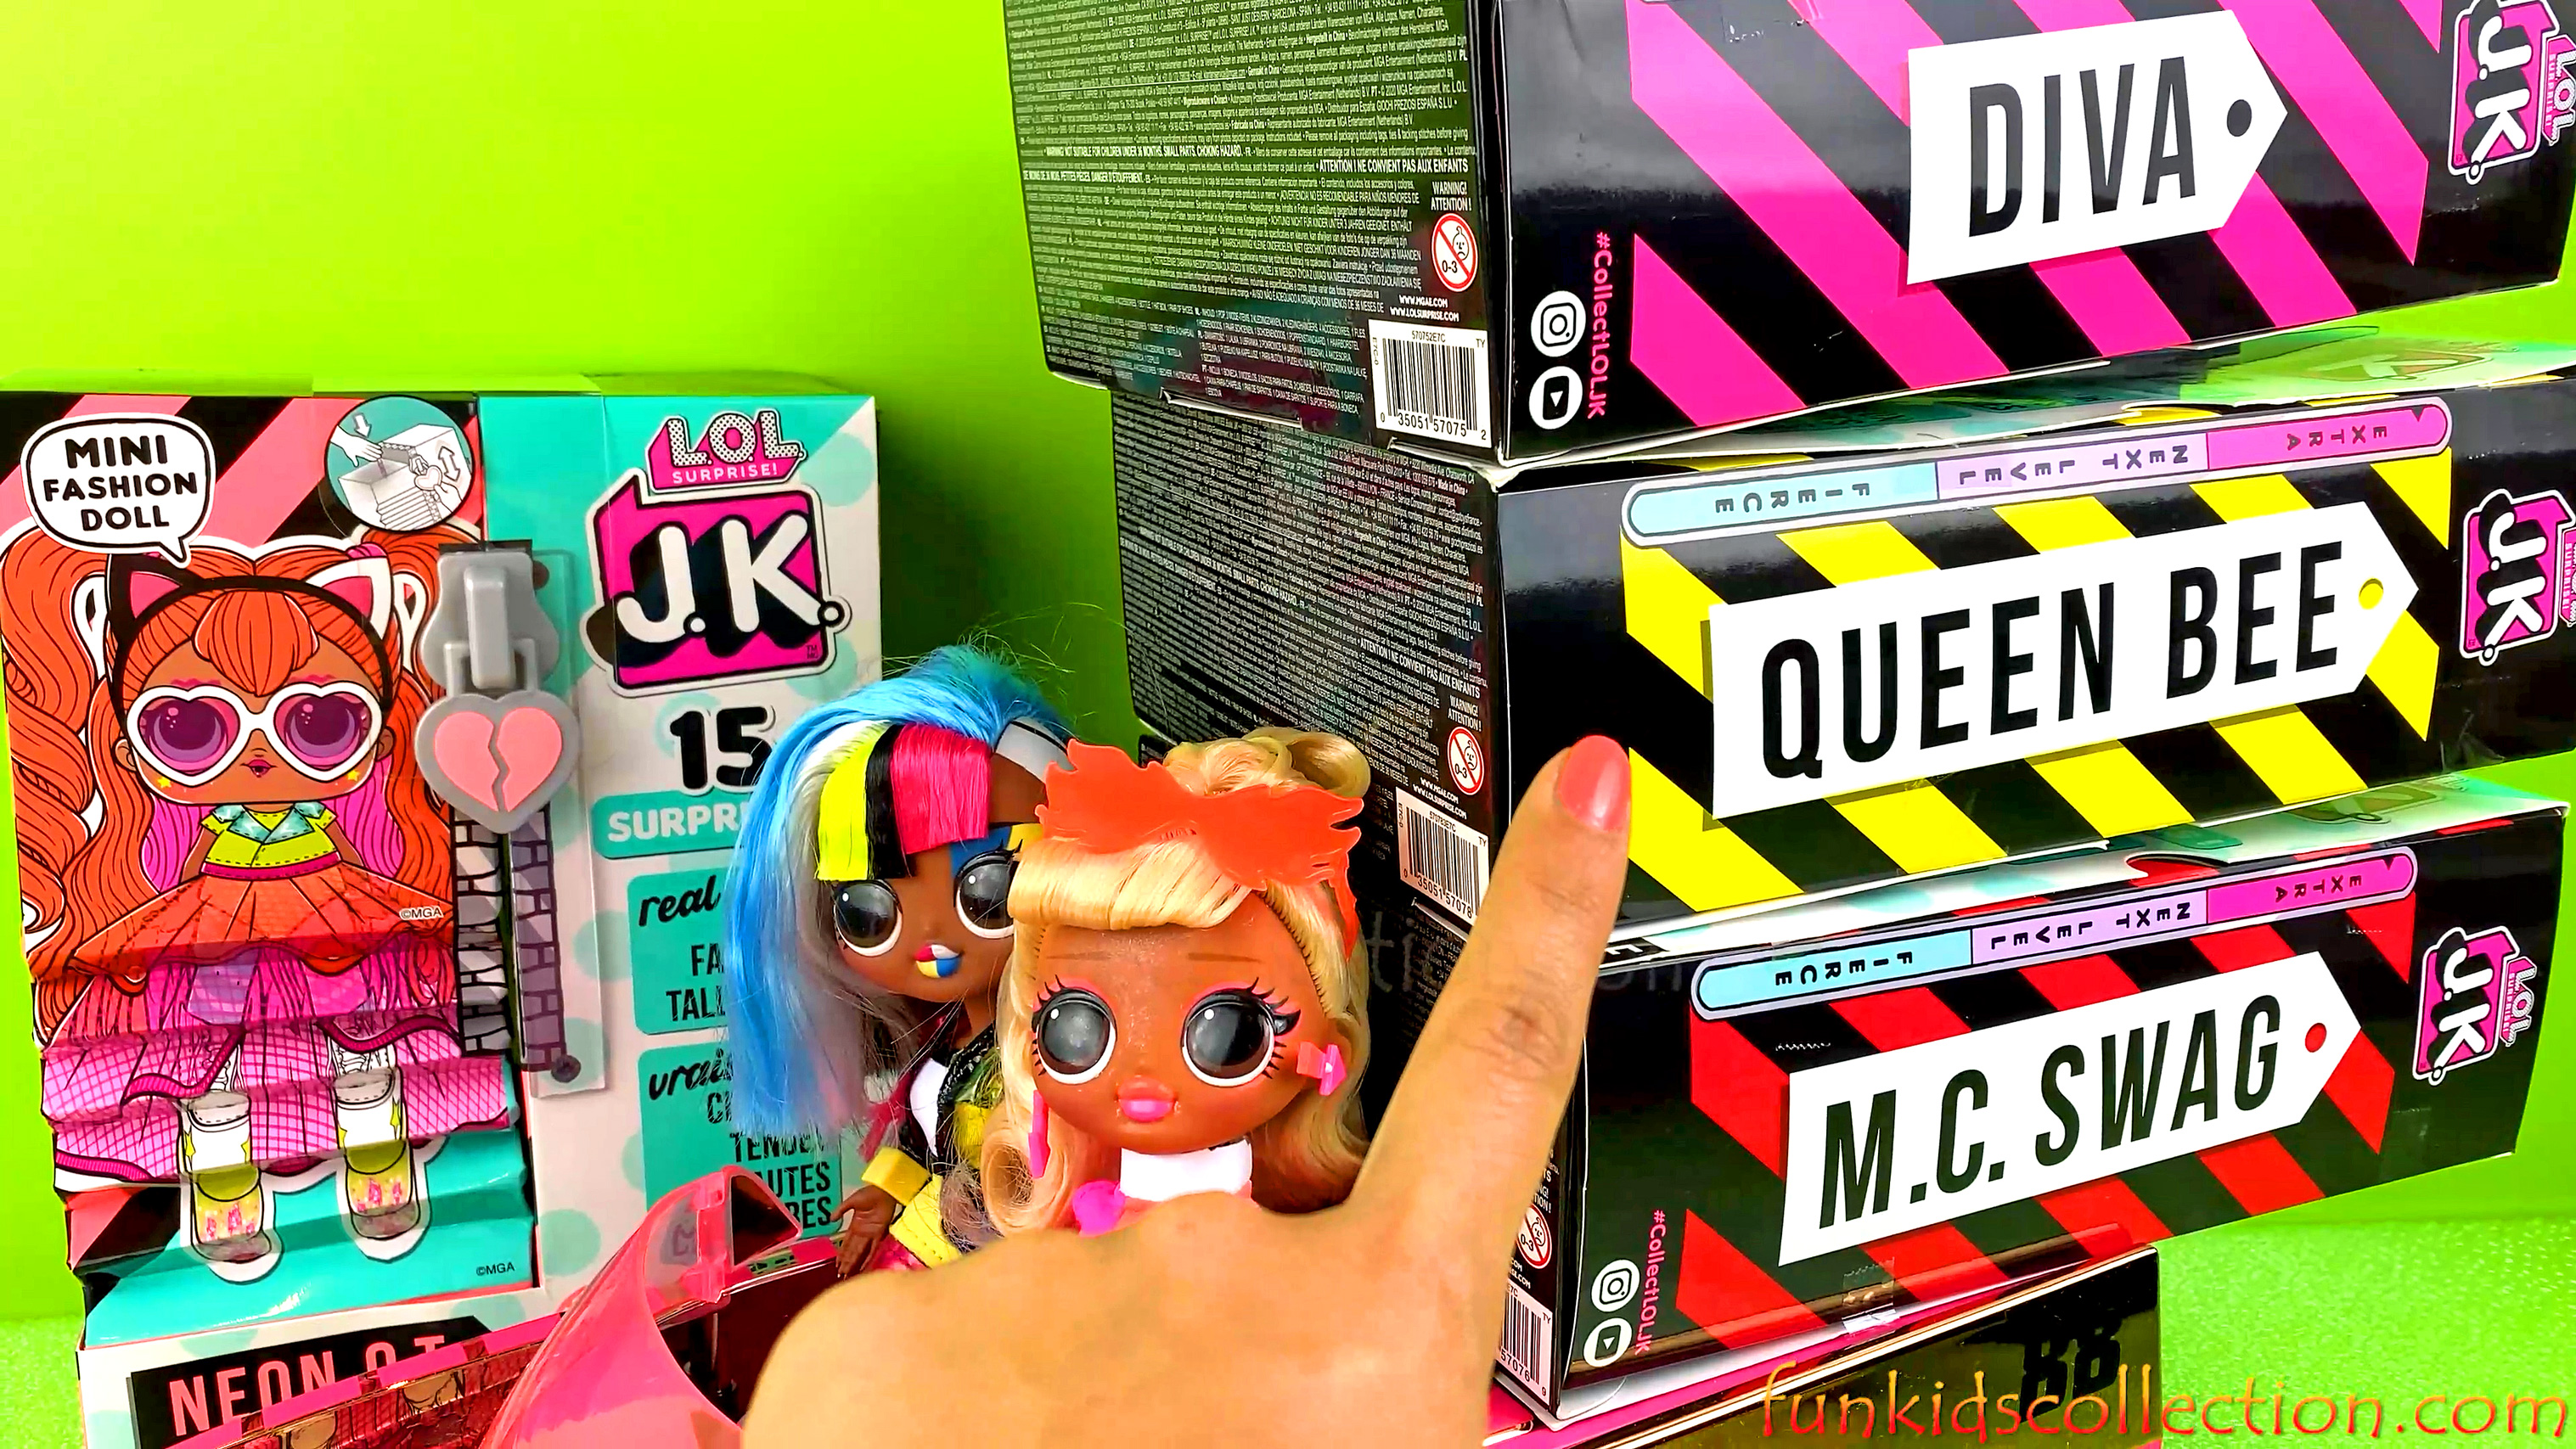 LOL Surprise JK Dolls Series 1 | Unboxing 4 Lol Surprise JK Dolls Neon QT Queen Bee Diva MC Swag